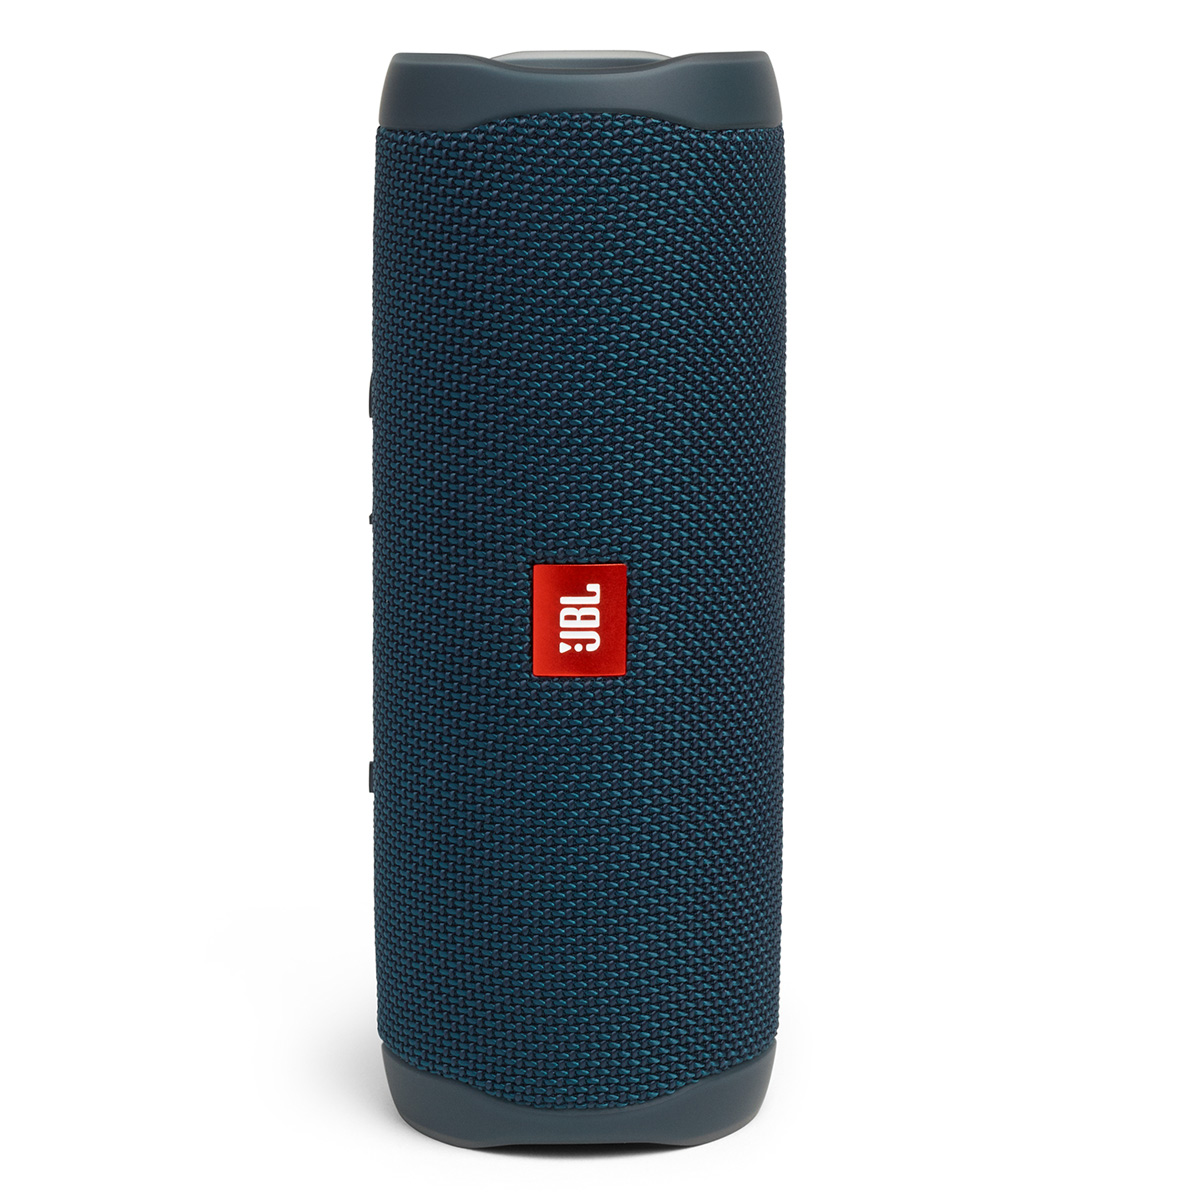 JBL-Flip-5-Portable-Waterproof-Bluetooth-Speaker thumbnail 9